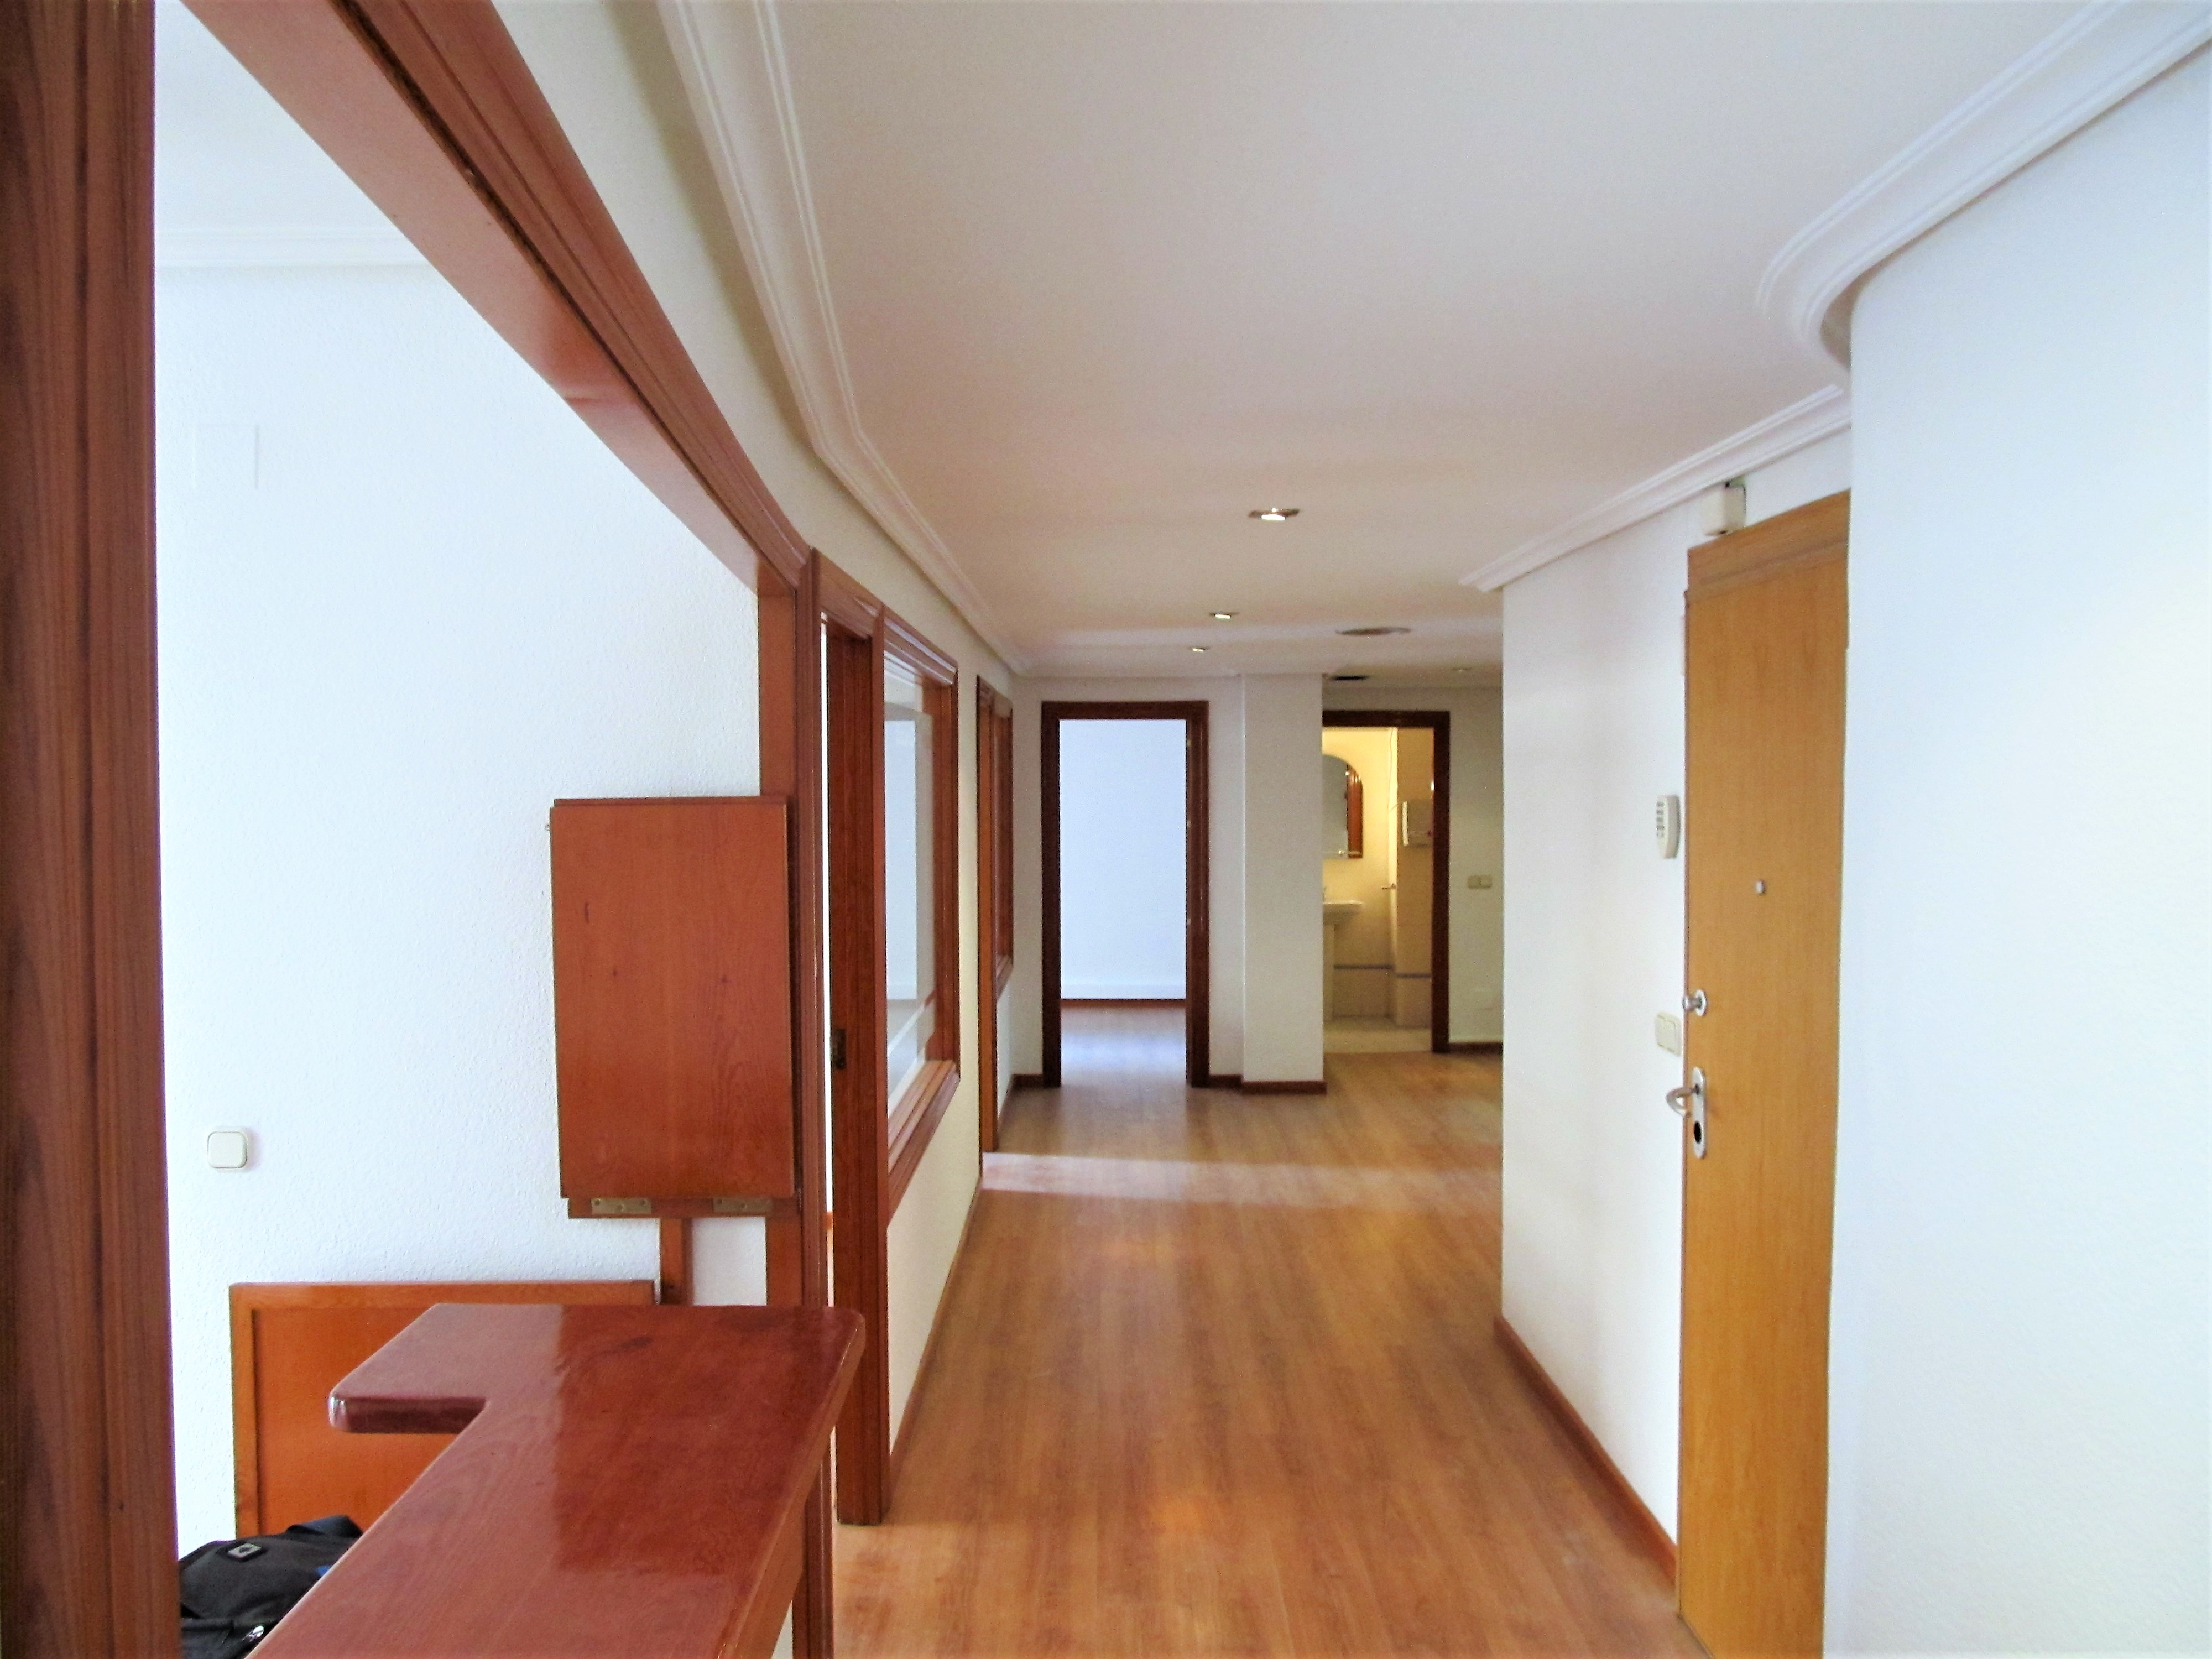 Spacious comercial premise in the heart of Murcia